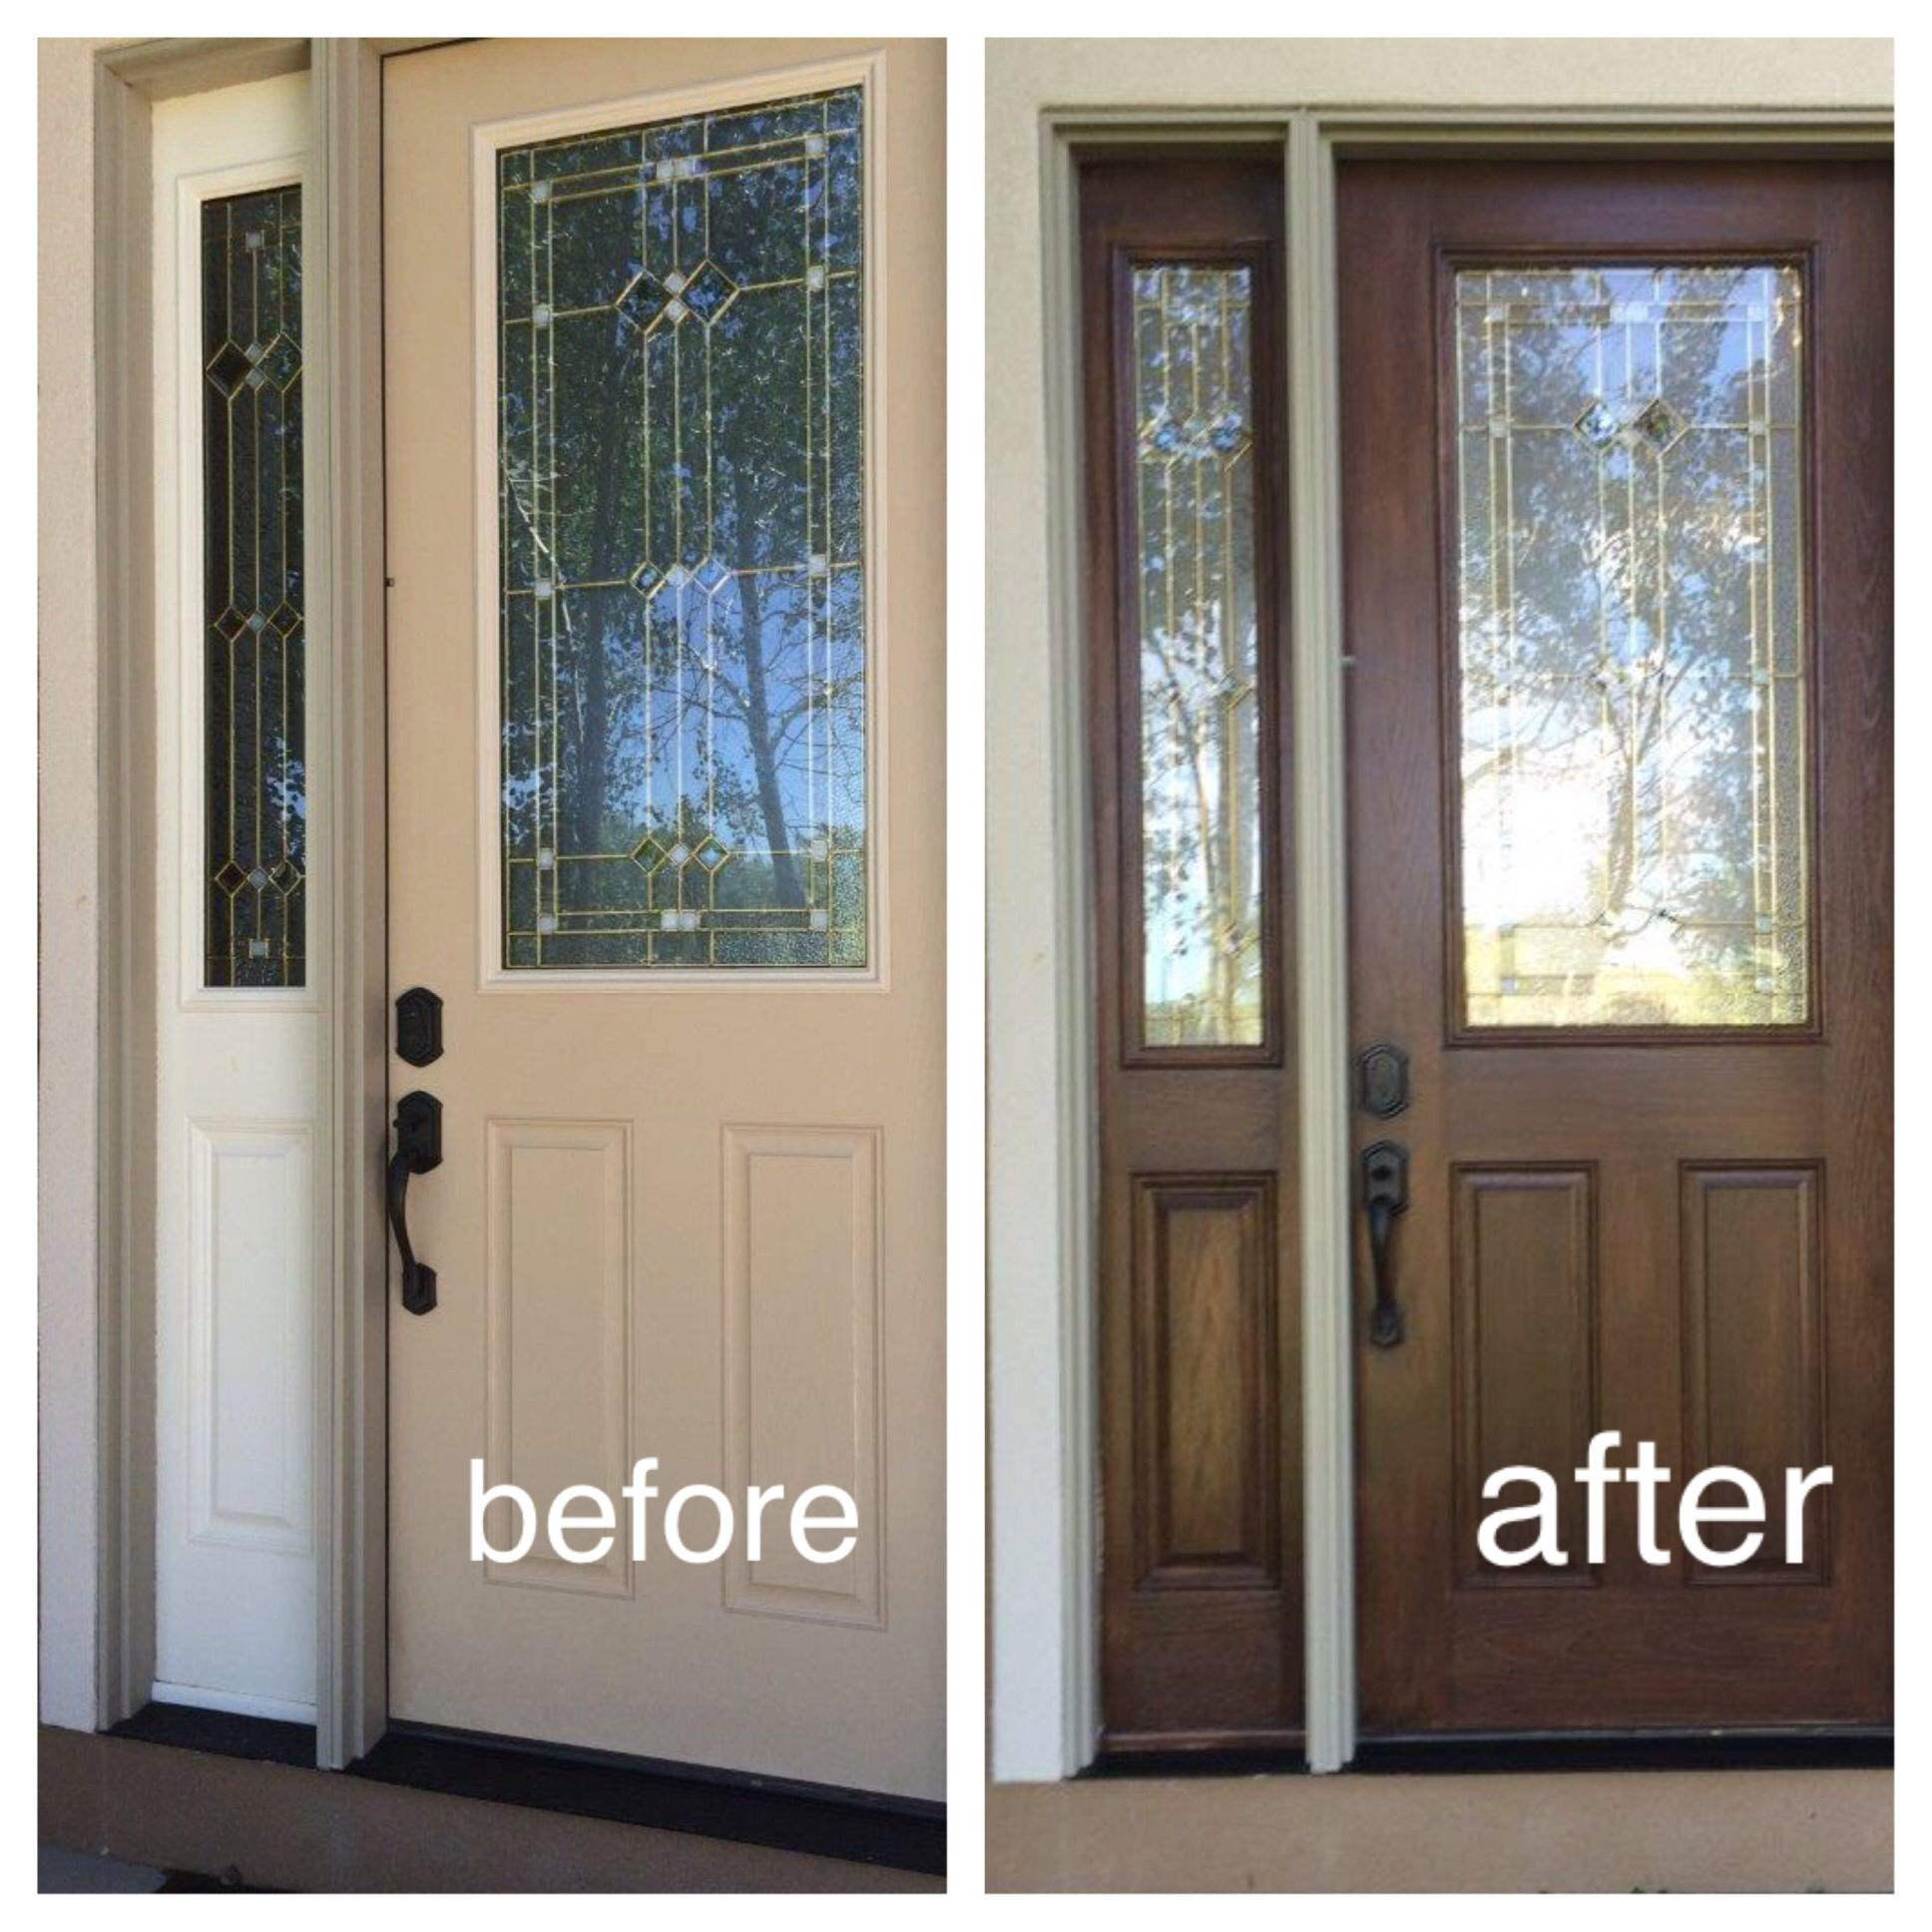 My fiberglass front door had wood grain so I decided to use Zar Wood Stain. & My fiberglass front door had wood grain so I decided to use Zar ...